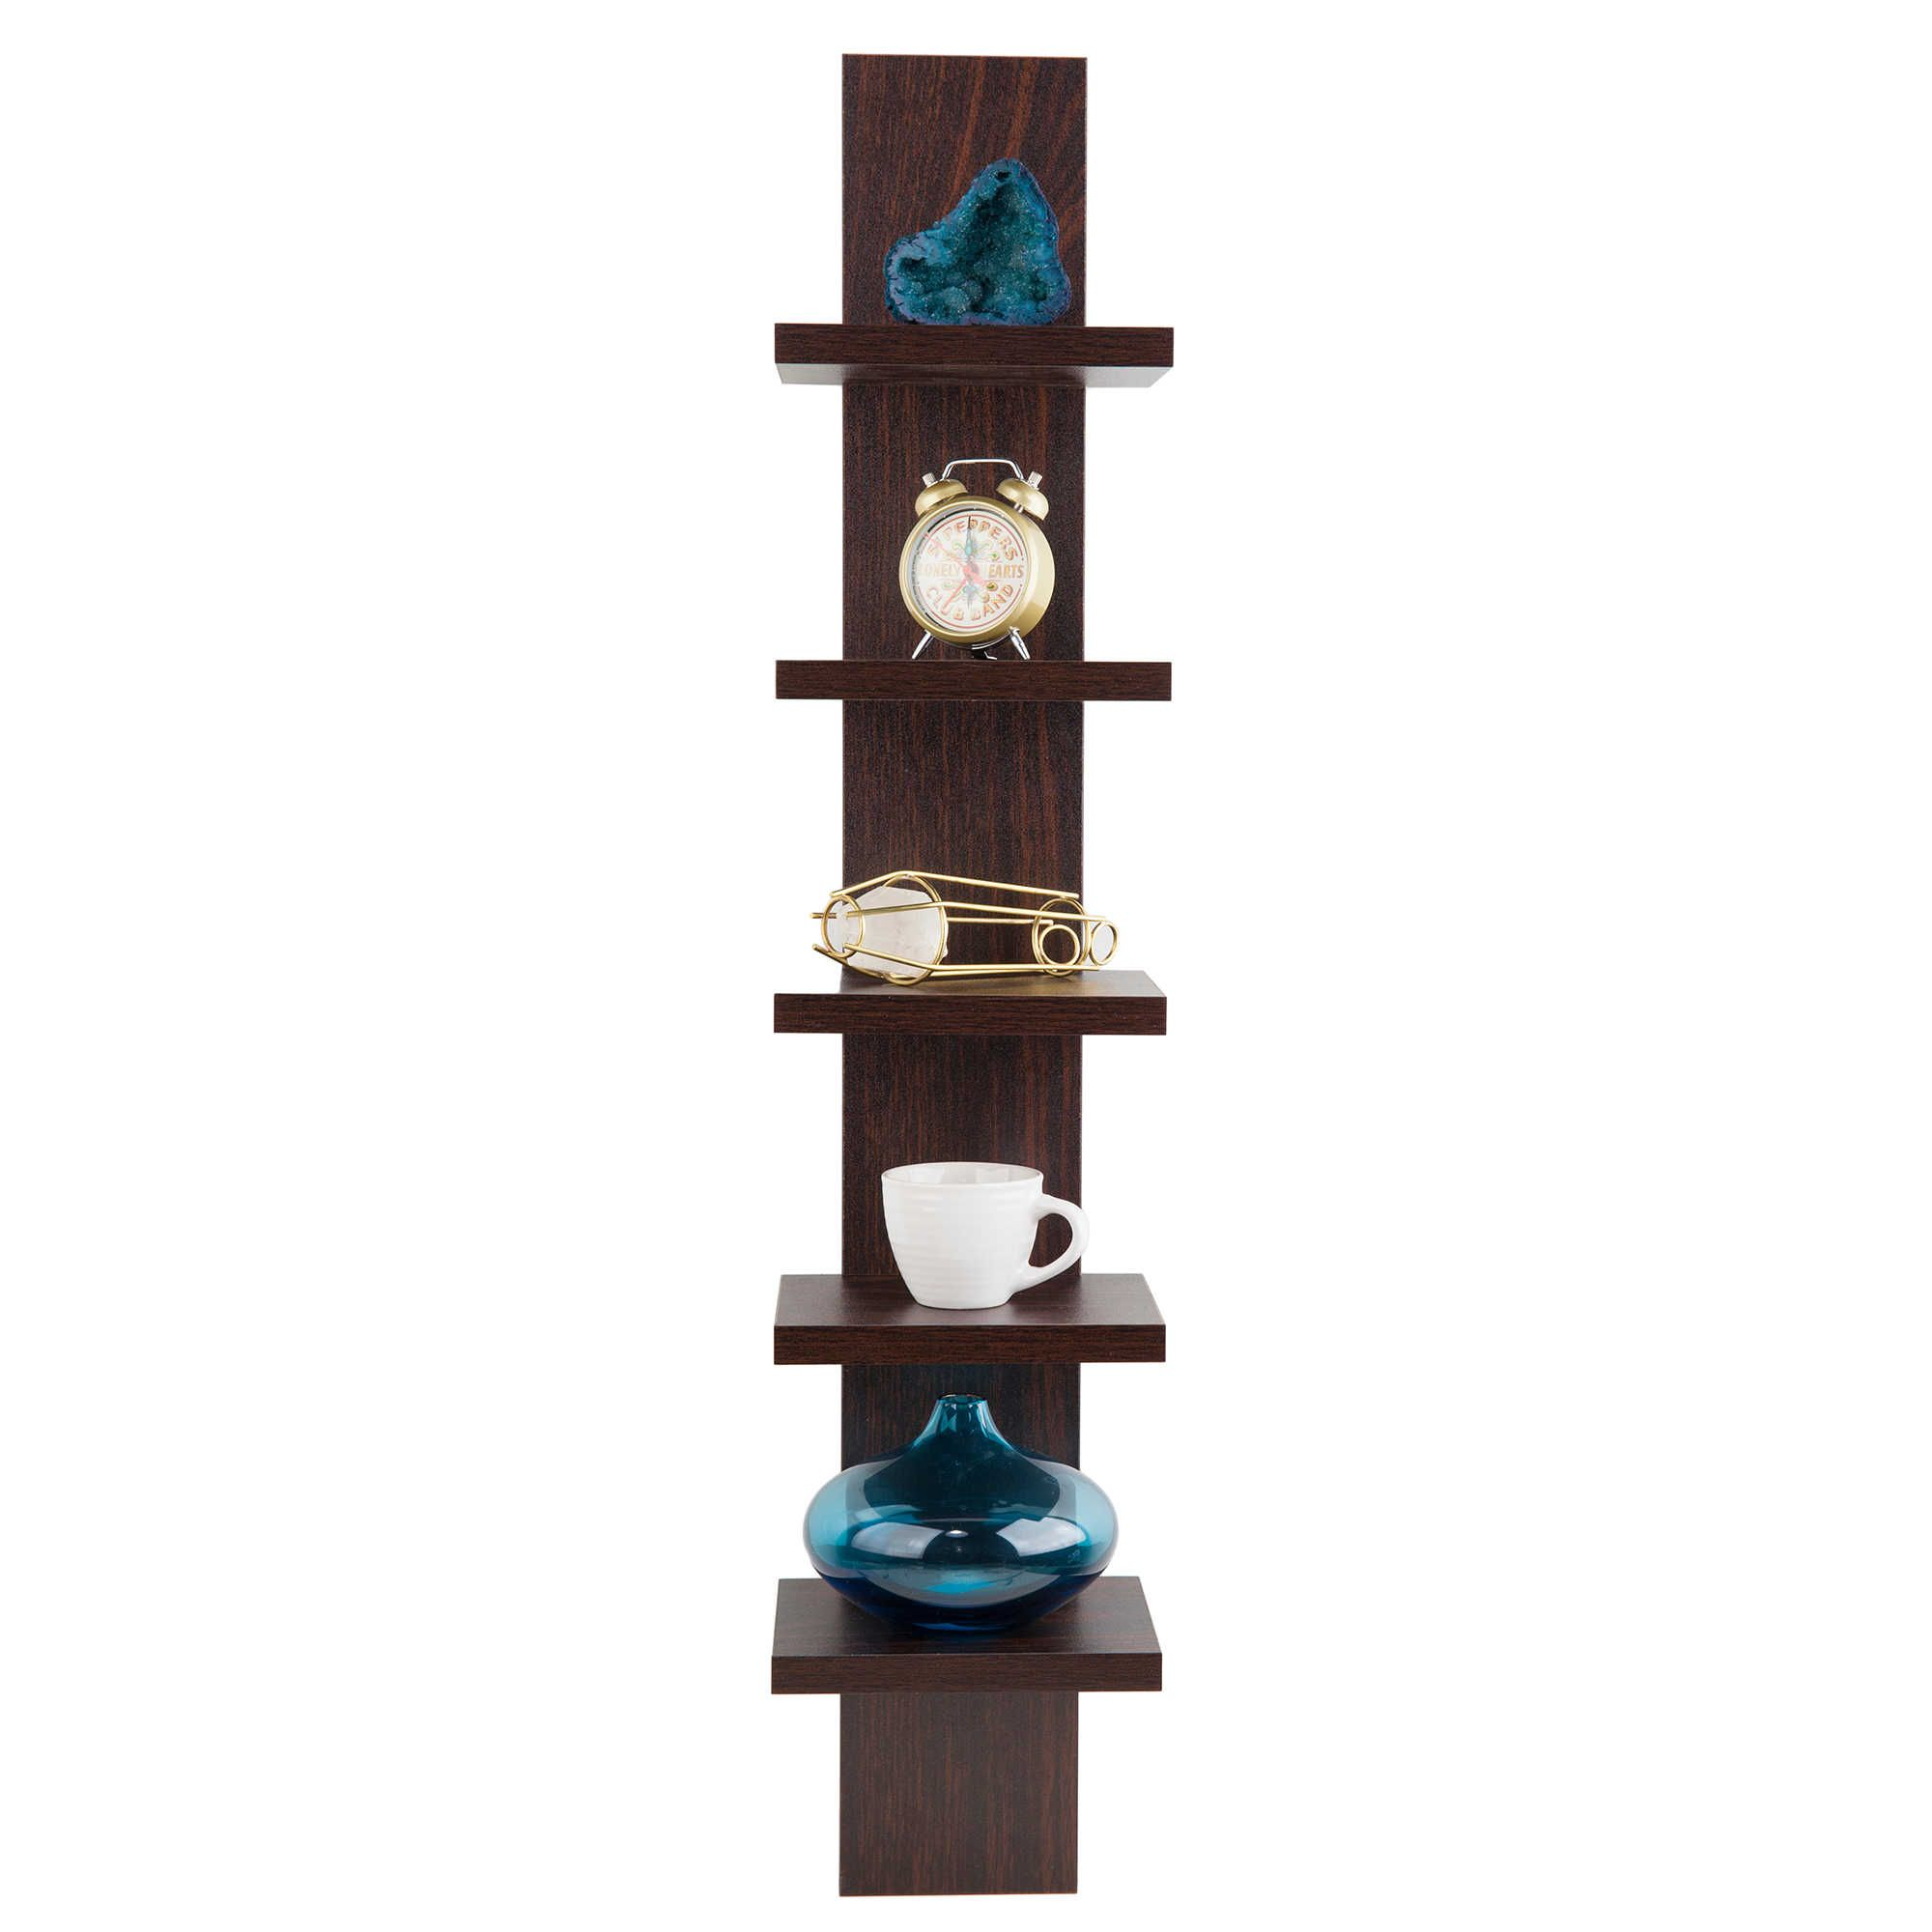 Danya B 5 Tier Spine Wall Shelves In Walnut